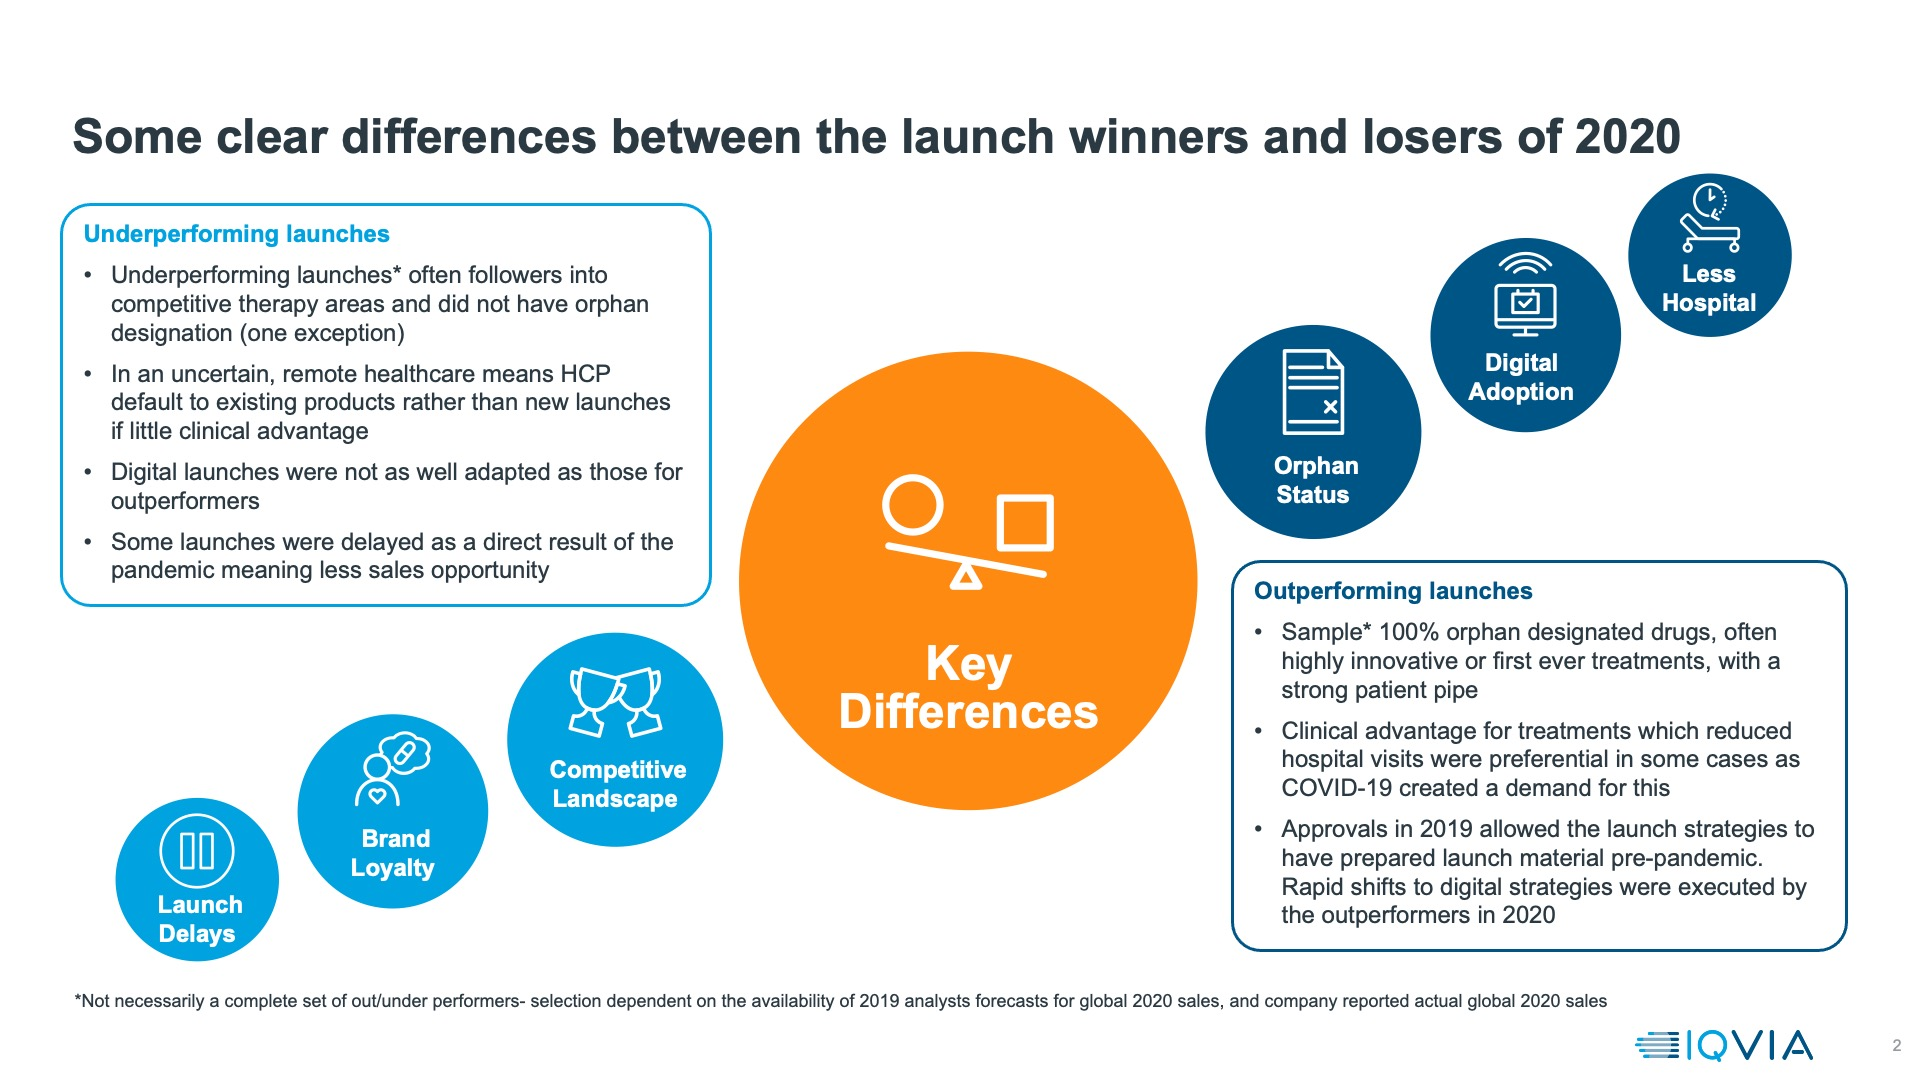 Some clear differences between the launch winners and losers of 2020